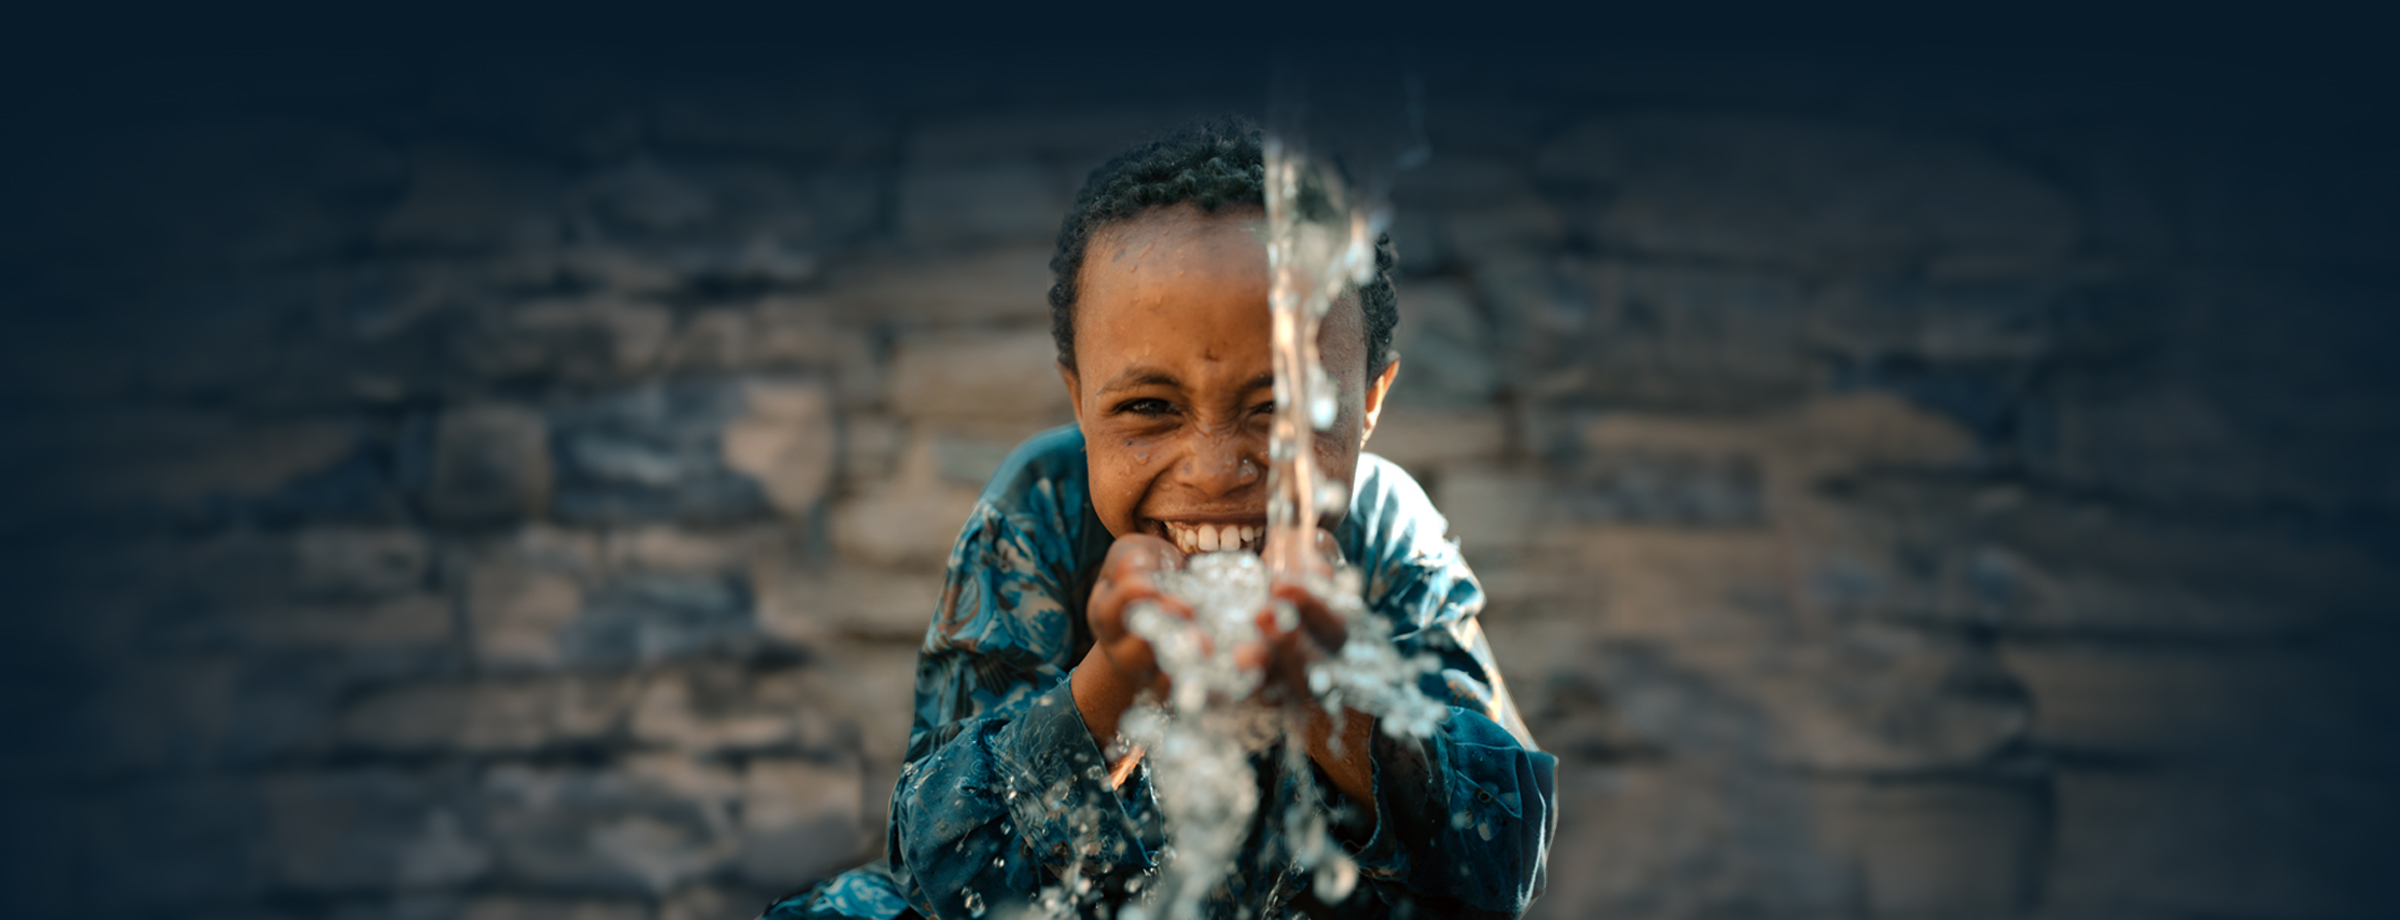 charitywater.org